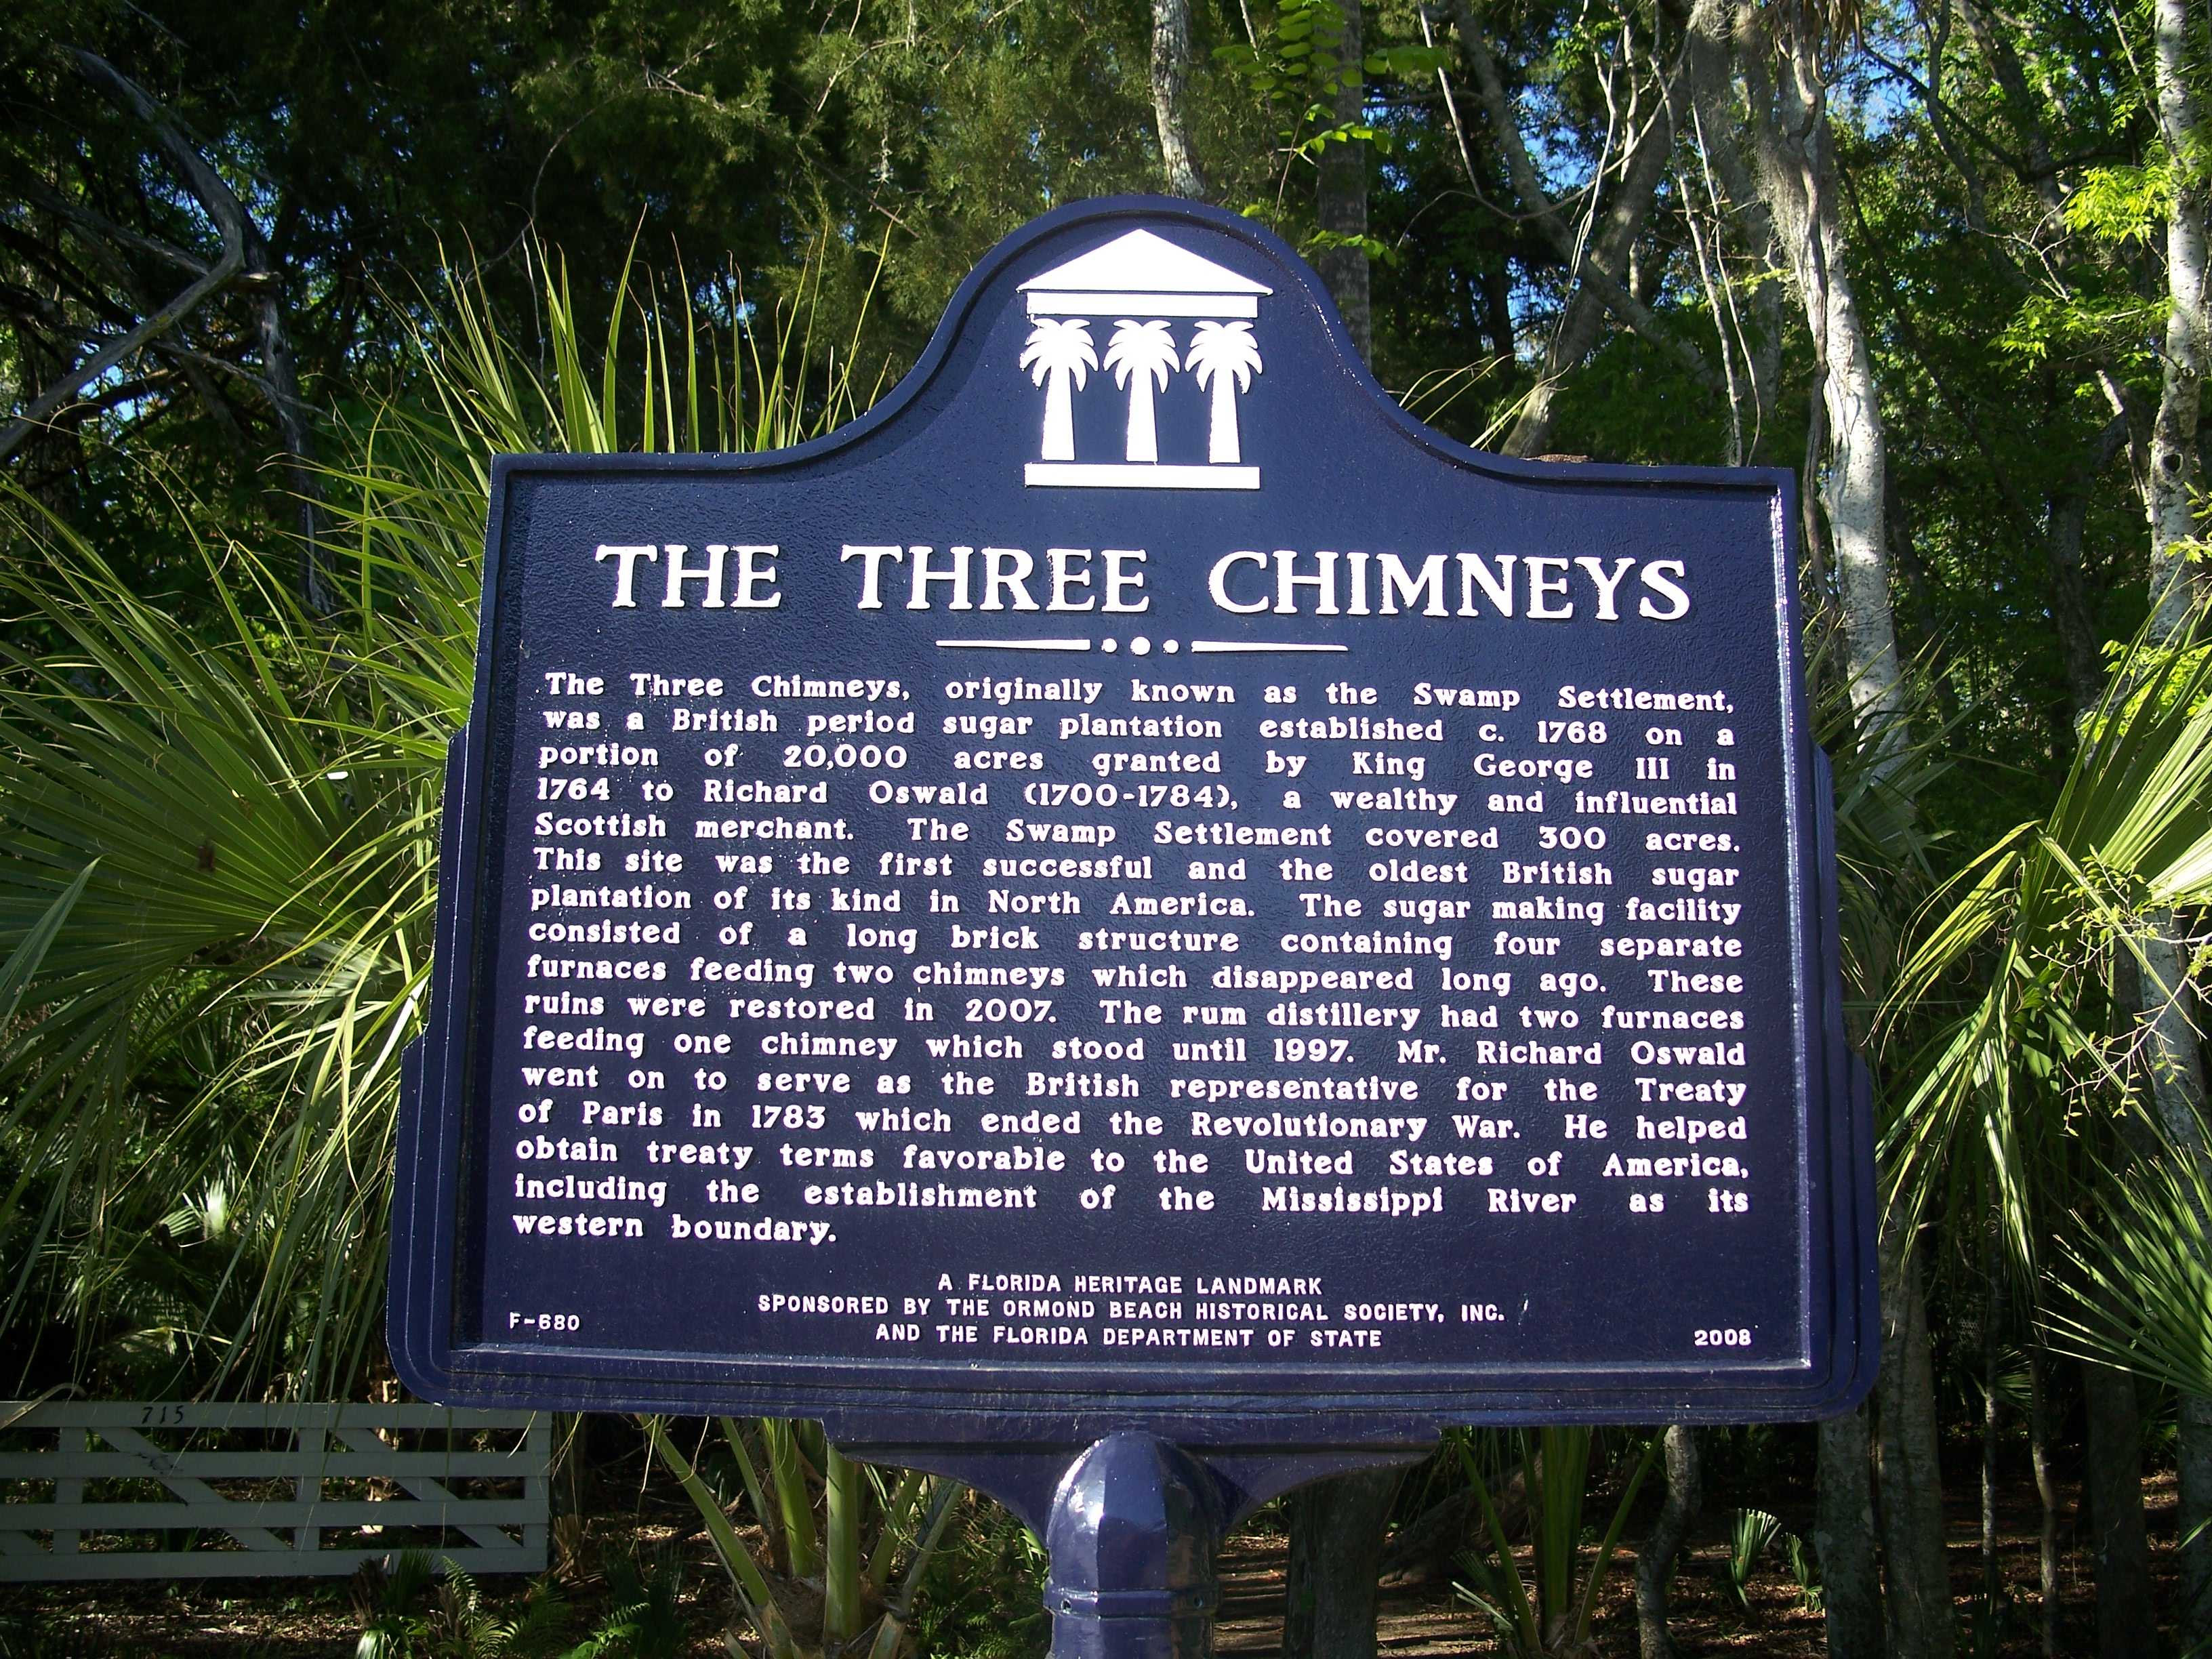 Historic Marker at the Three Chimney's Archaeological Site